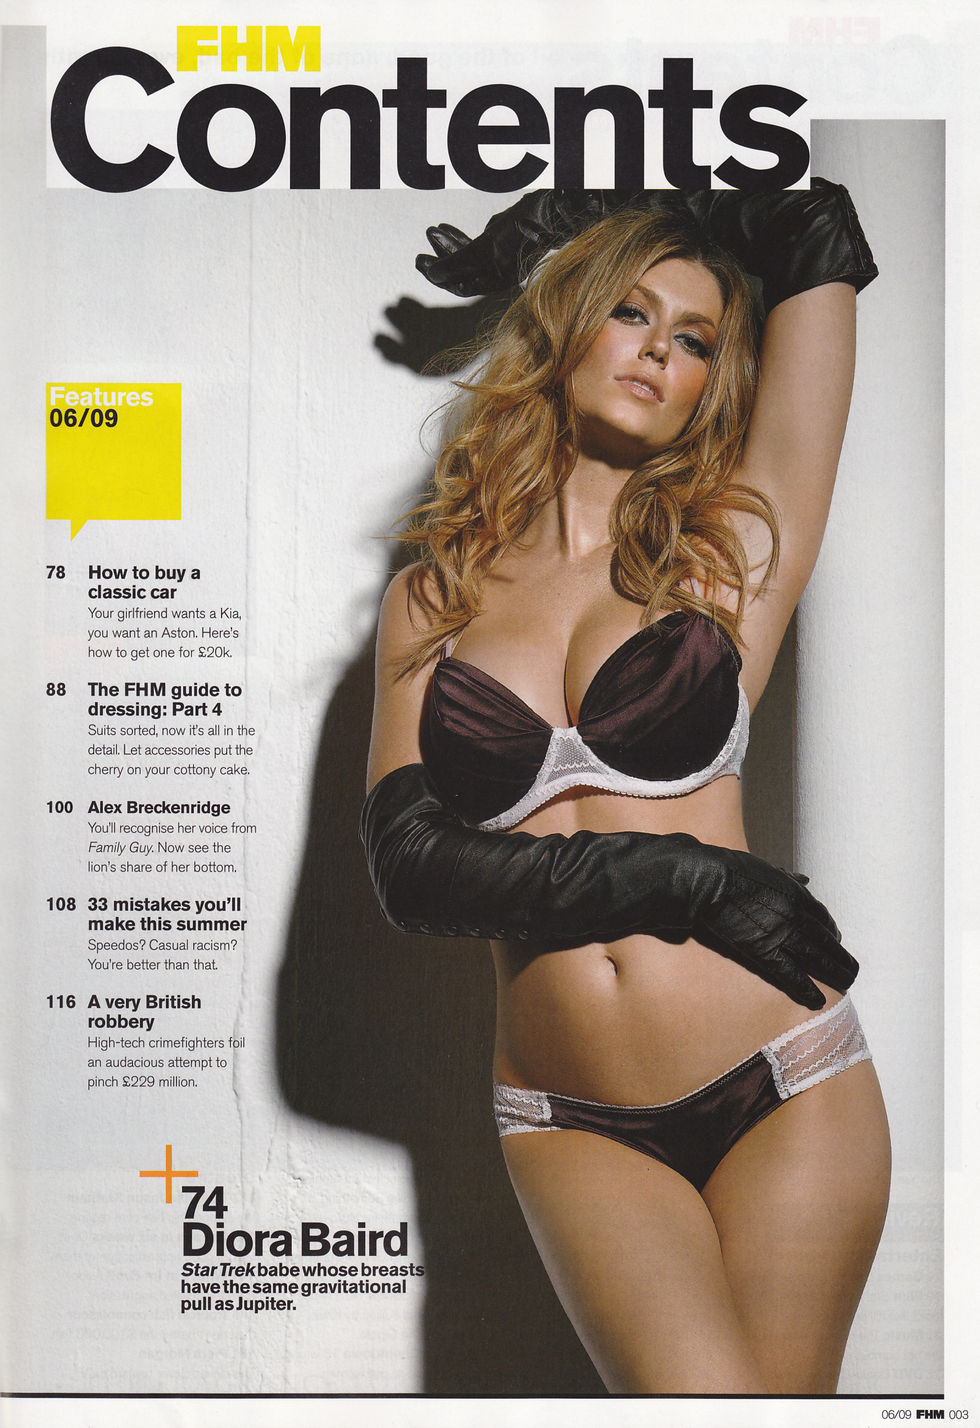 diora-baird-fhm-magazine-june-2009-01